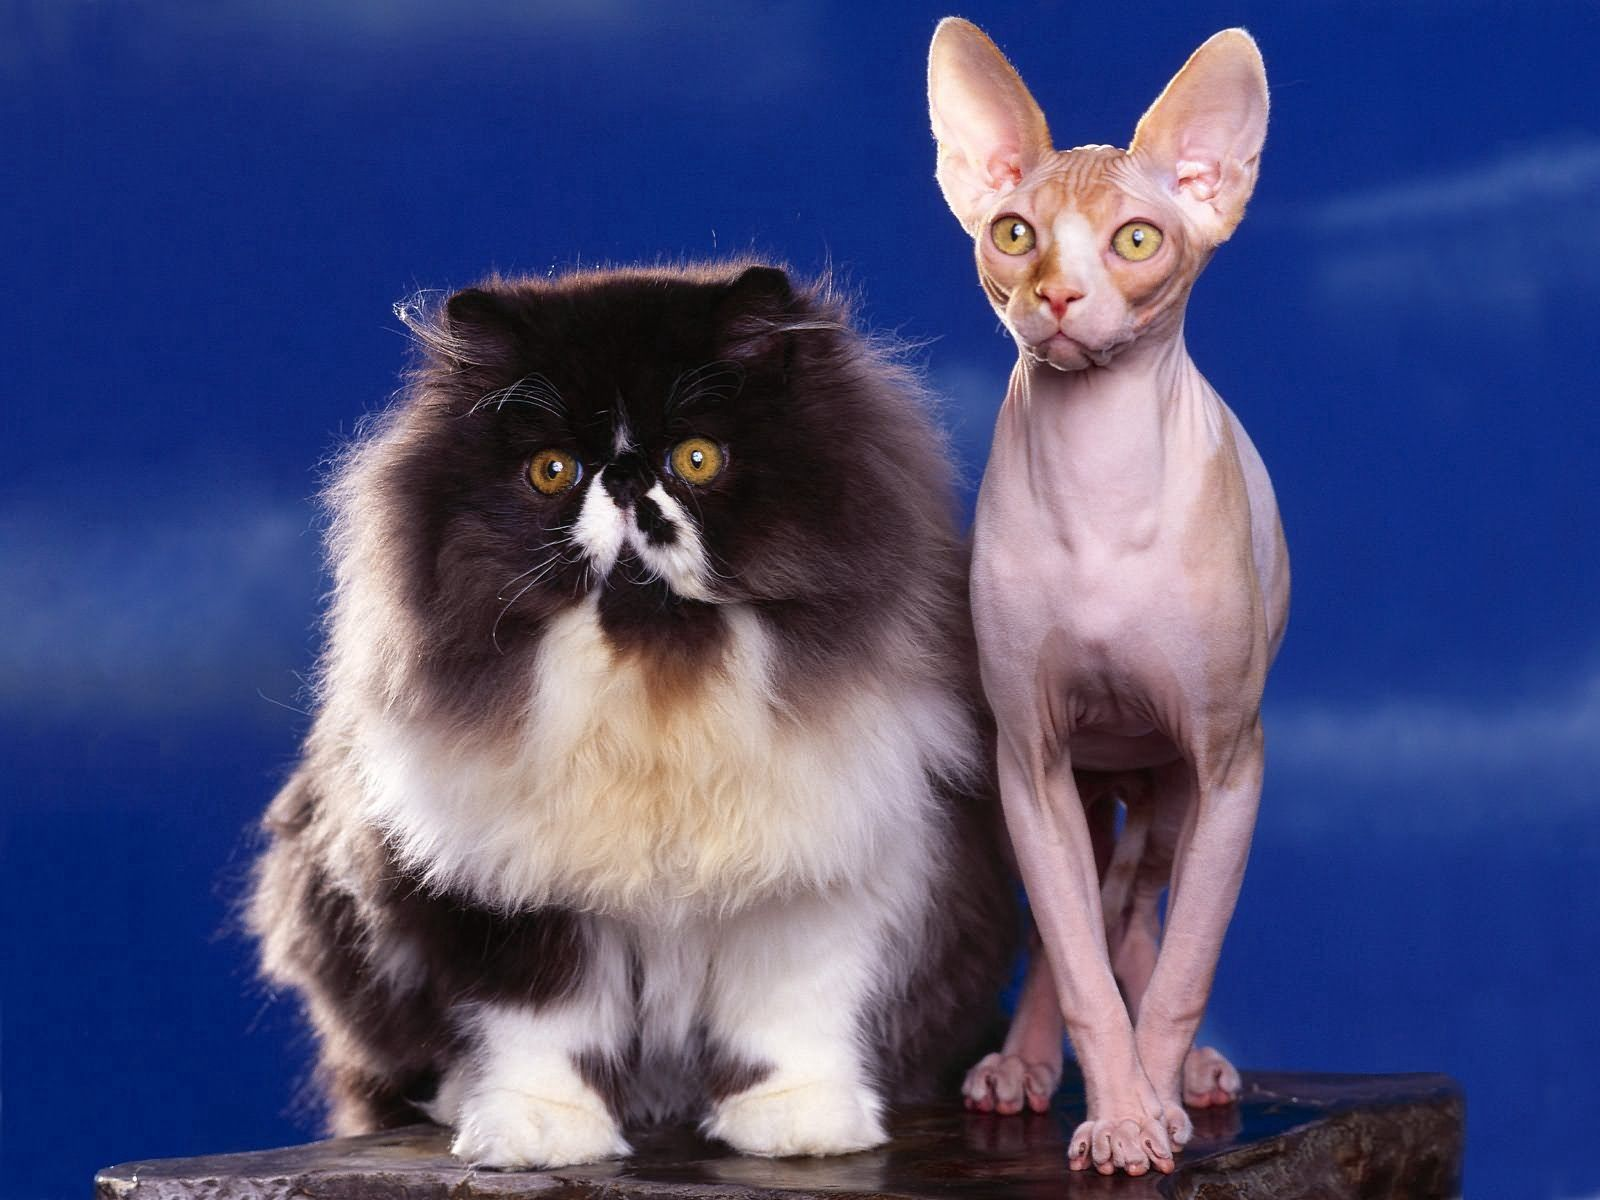 73276 download wallpaper Animals, Cats, Sphinx, Fluffy, Couple, Pair screensavers and pictures for free